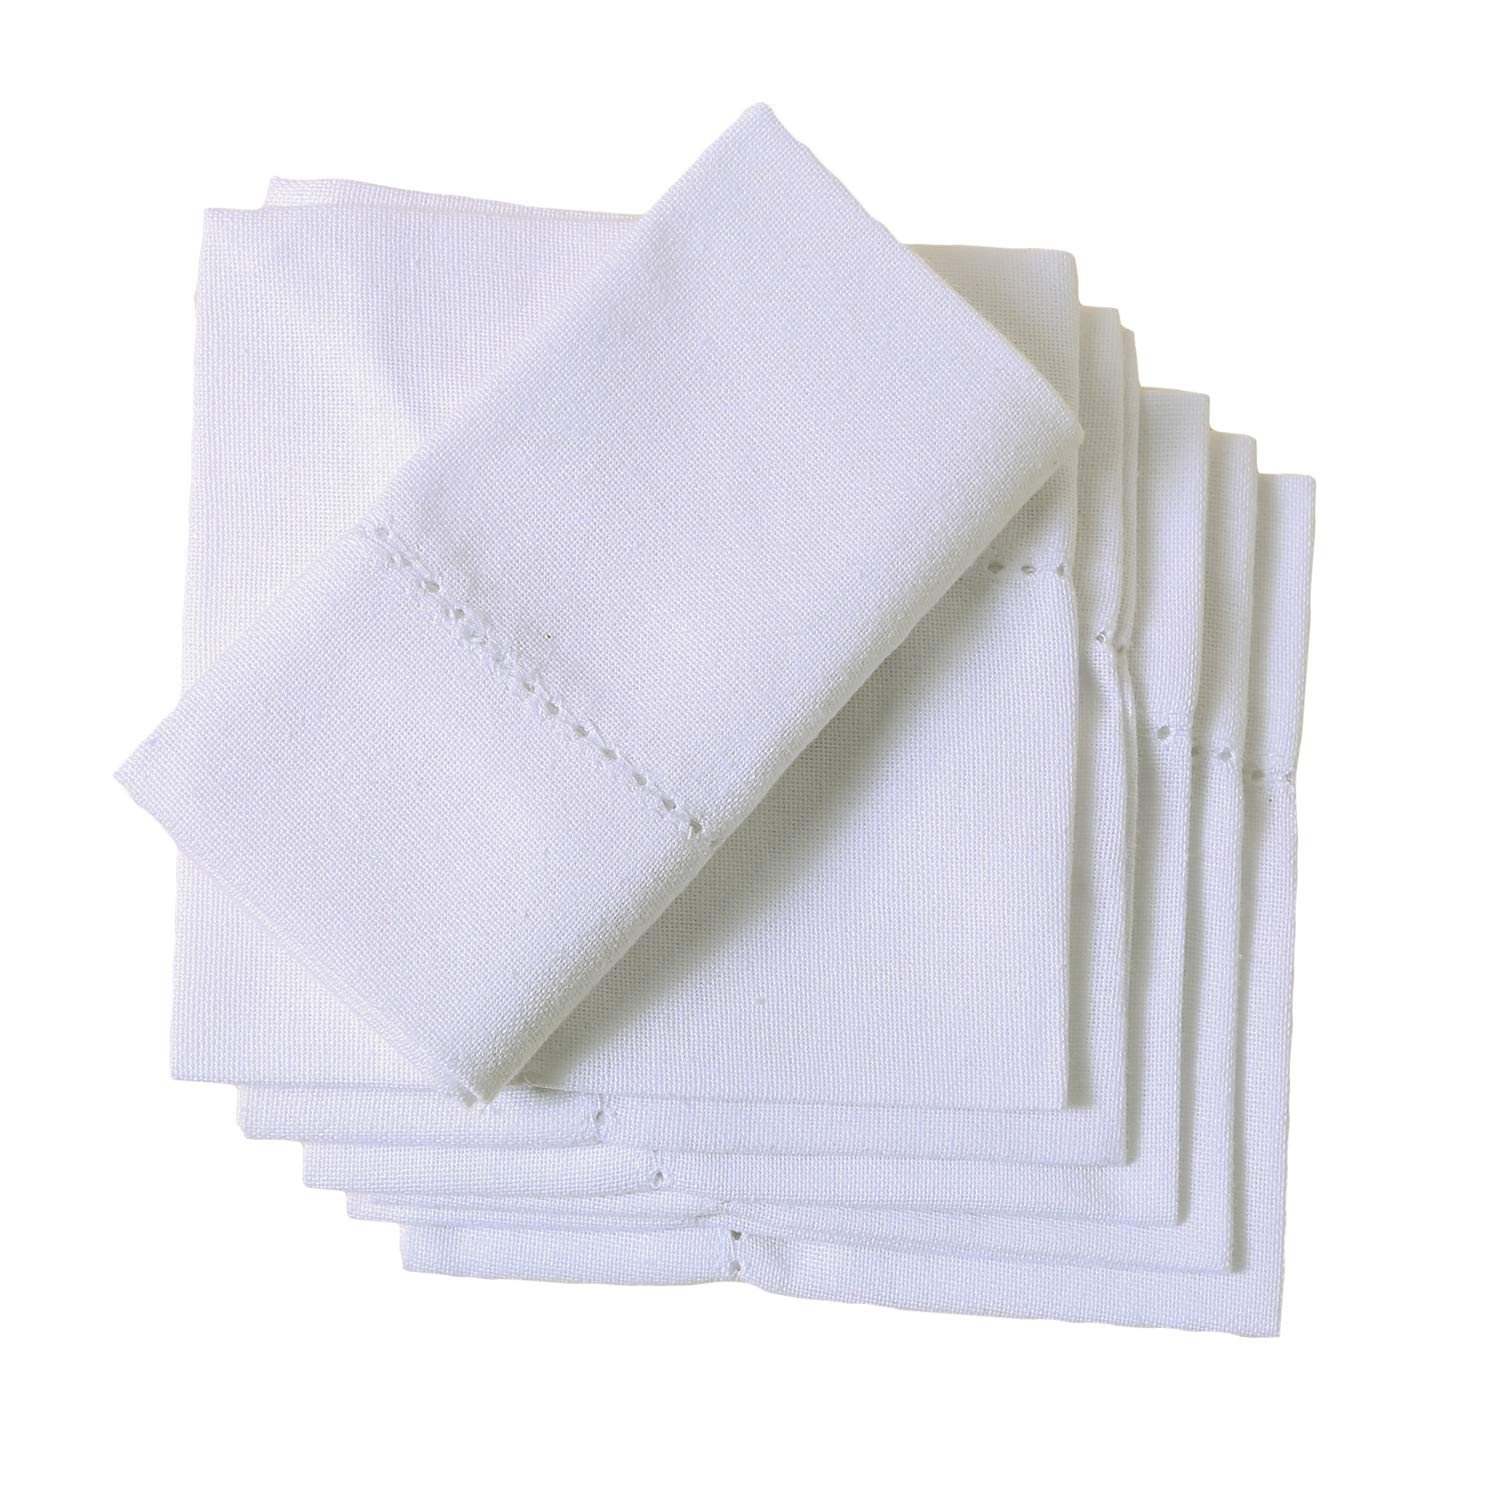 Organic Cotton Napkins, 20 x 20 inch Set of 6 White Napkins, Dinner Cloth Napkins for Dinner, Events, Weddings, Tailored with Hemstitched Mitered Corners and a Generous Hem